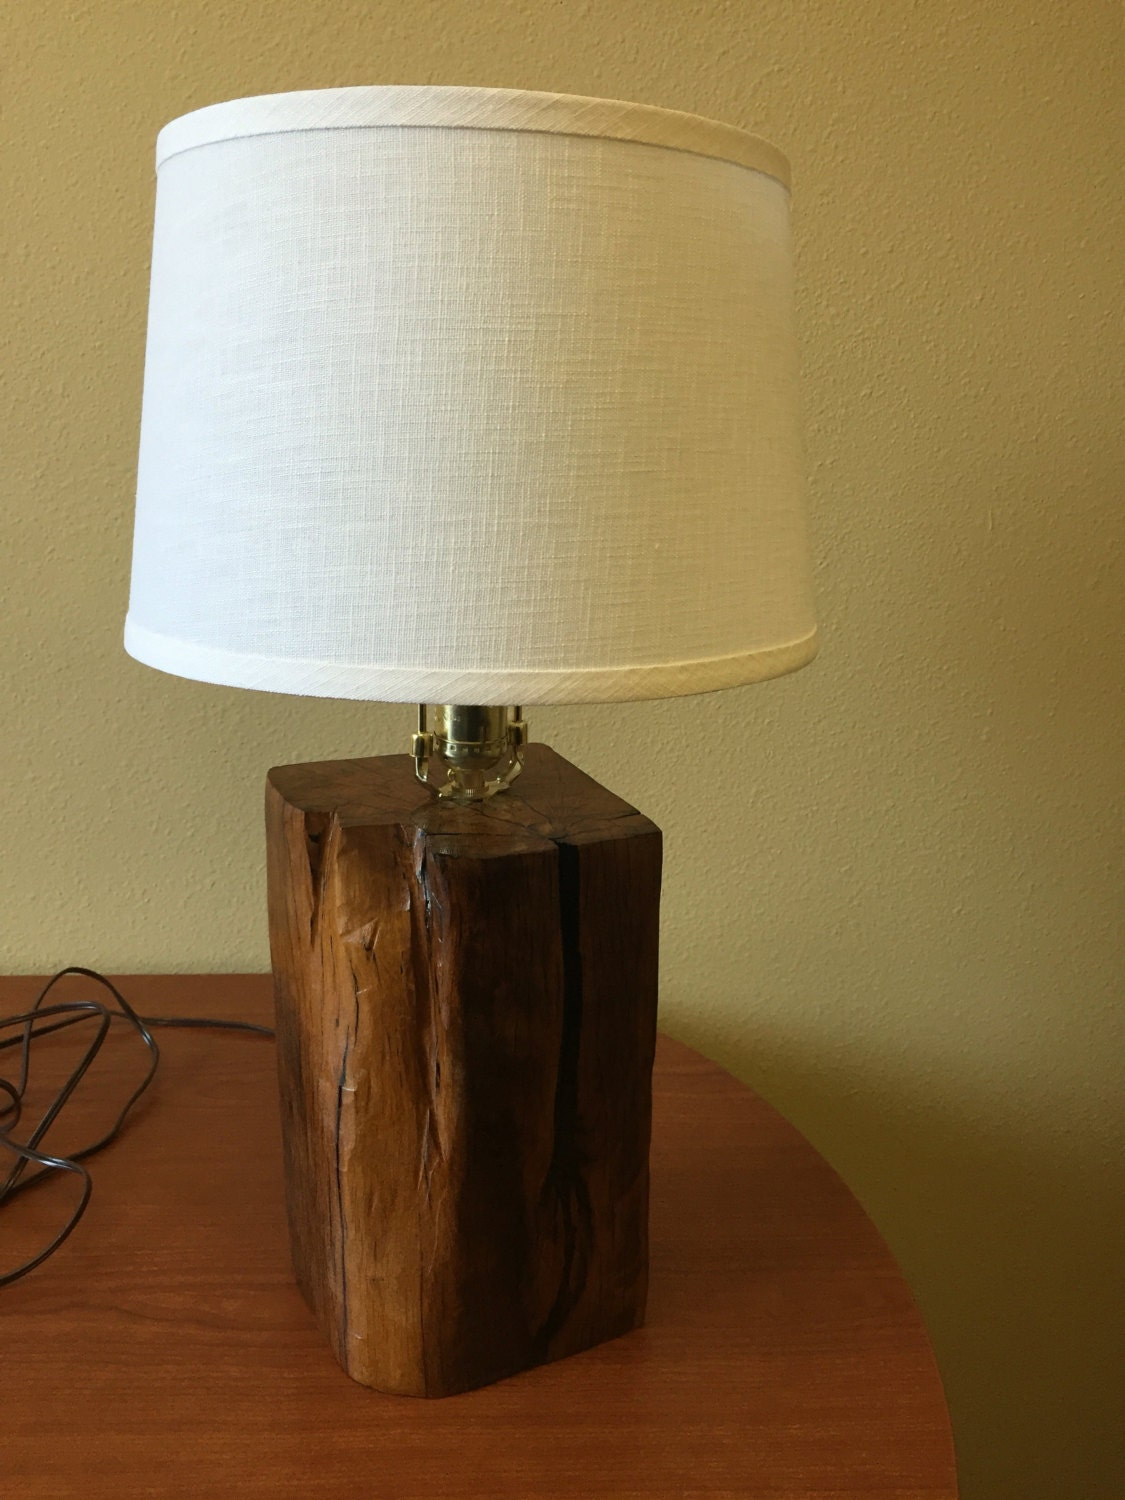 100 year old beam reclaimed wood table lamp by mcfinewoodworkingaz. Black Bedroom Furniture Sets. Home Design Ideas